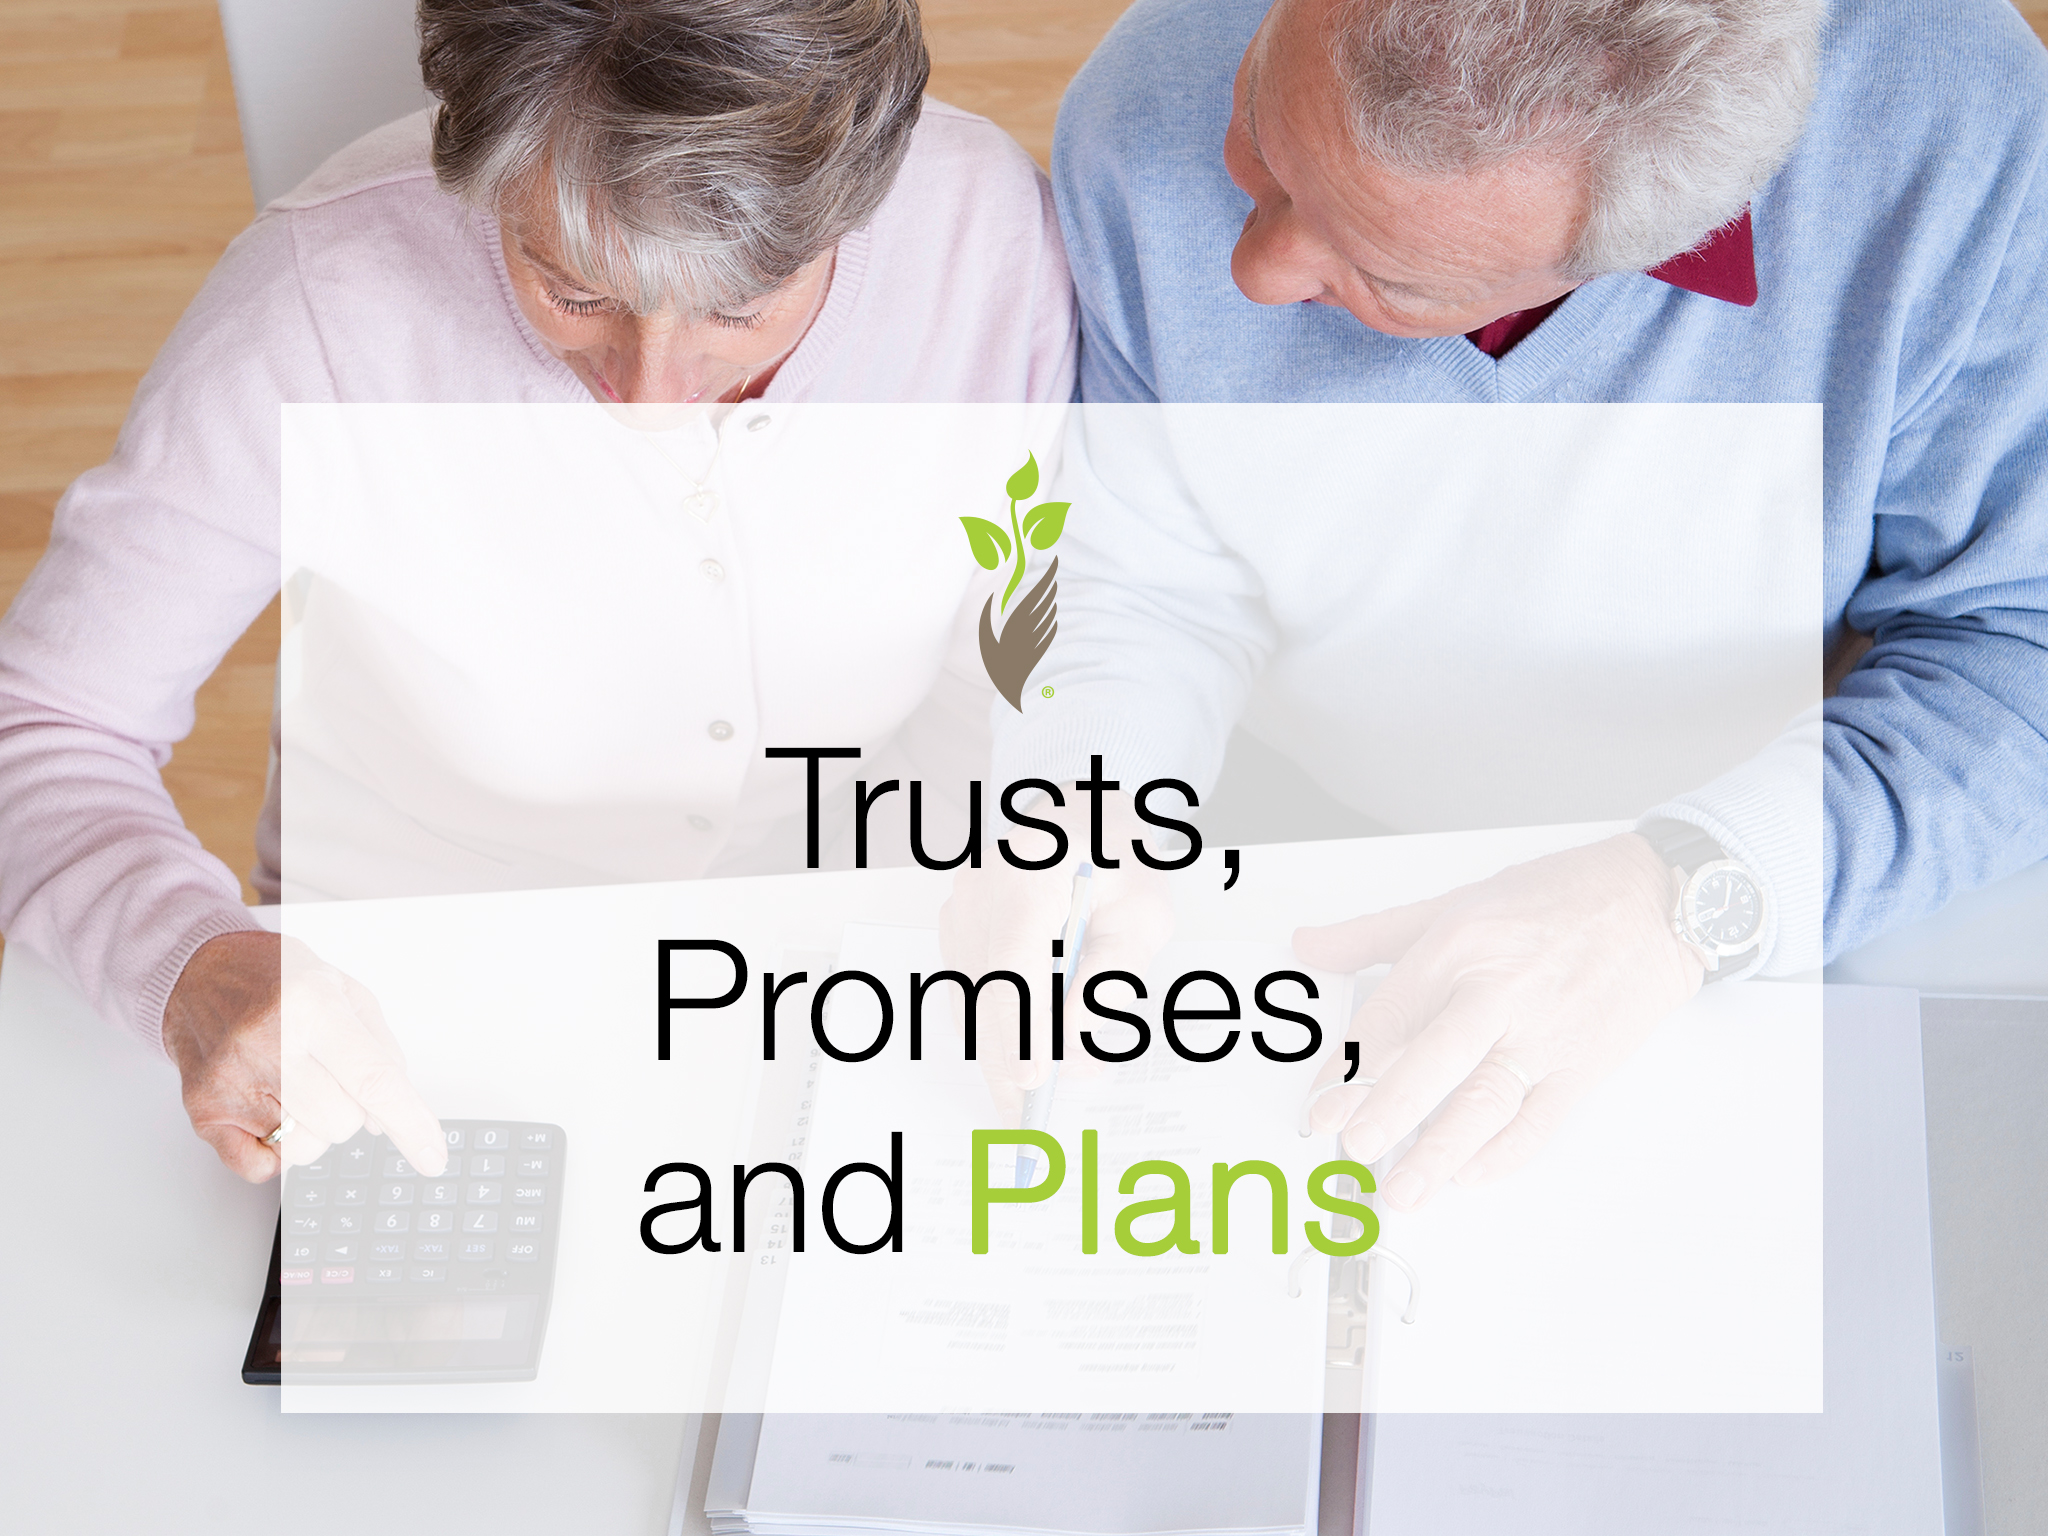 Trusts, Promises, and Plans